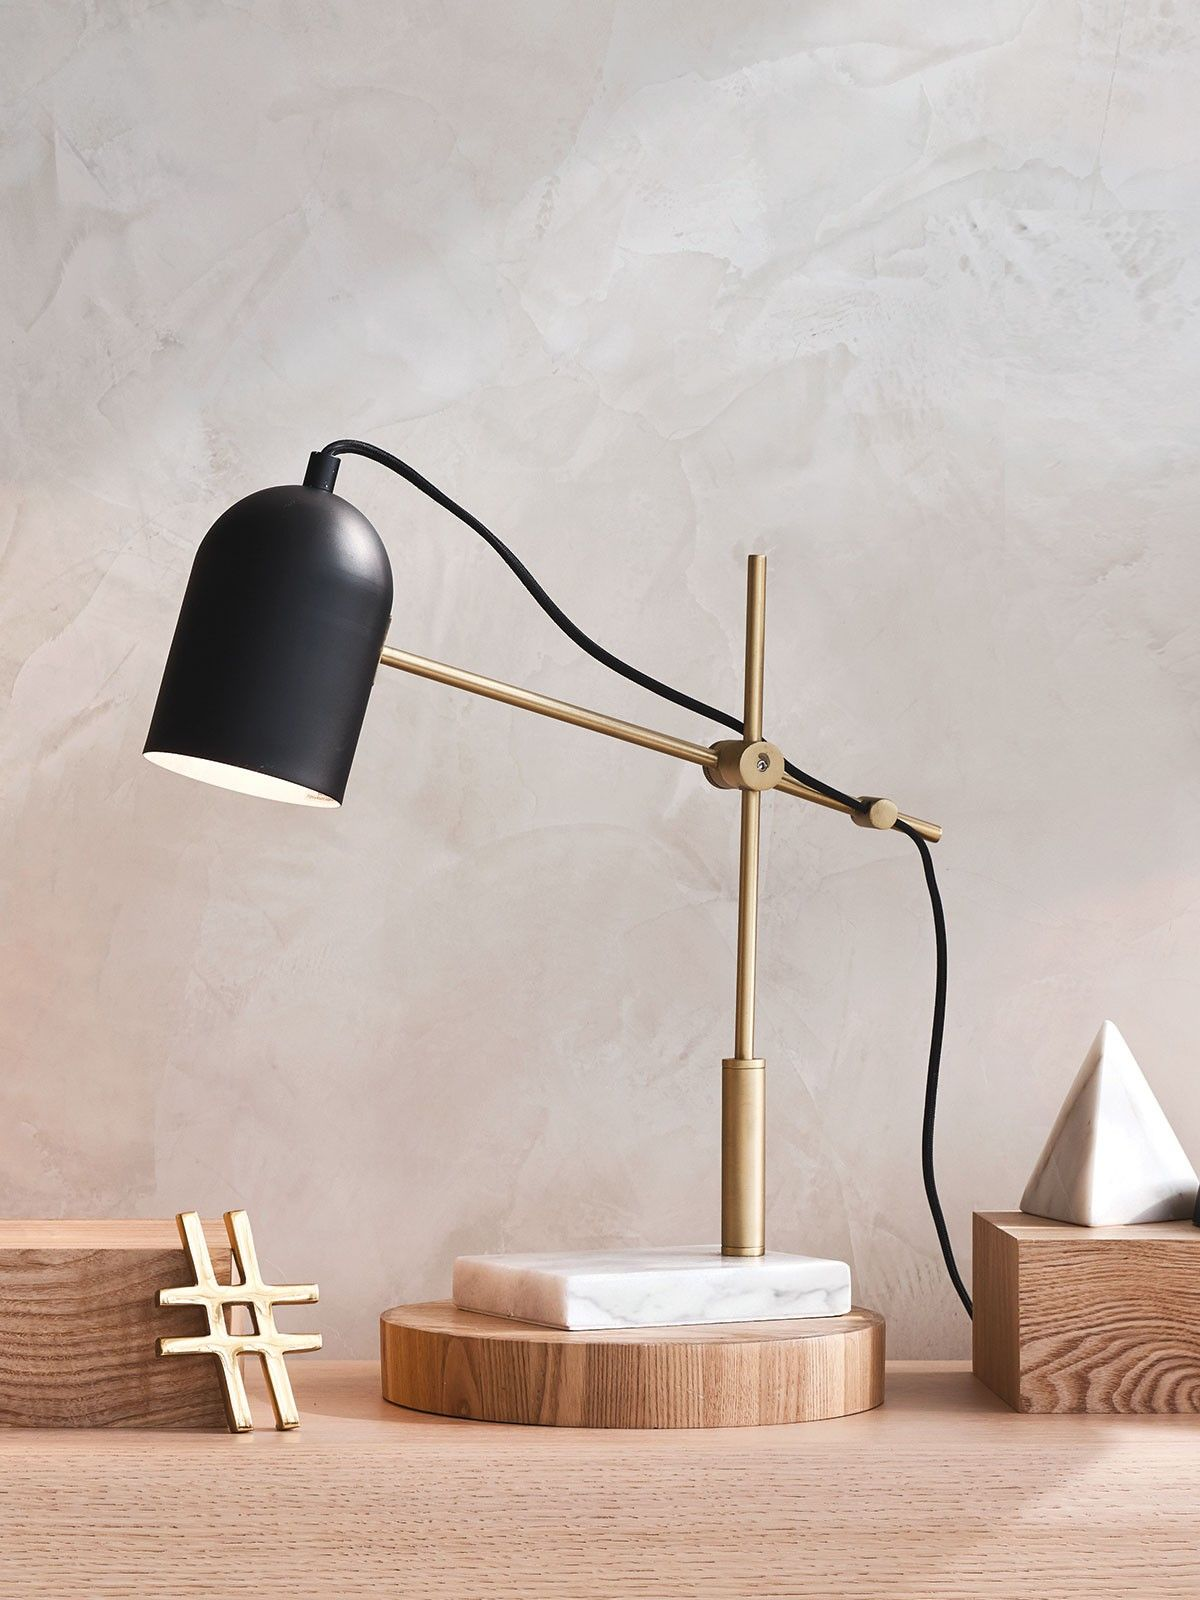 Cheswick table lamp in blackmarble desk lamps lamps cheswick table lamp in blackmarble desk lamps lamps lighting geotapseo Gallery